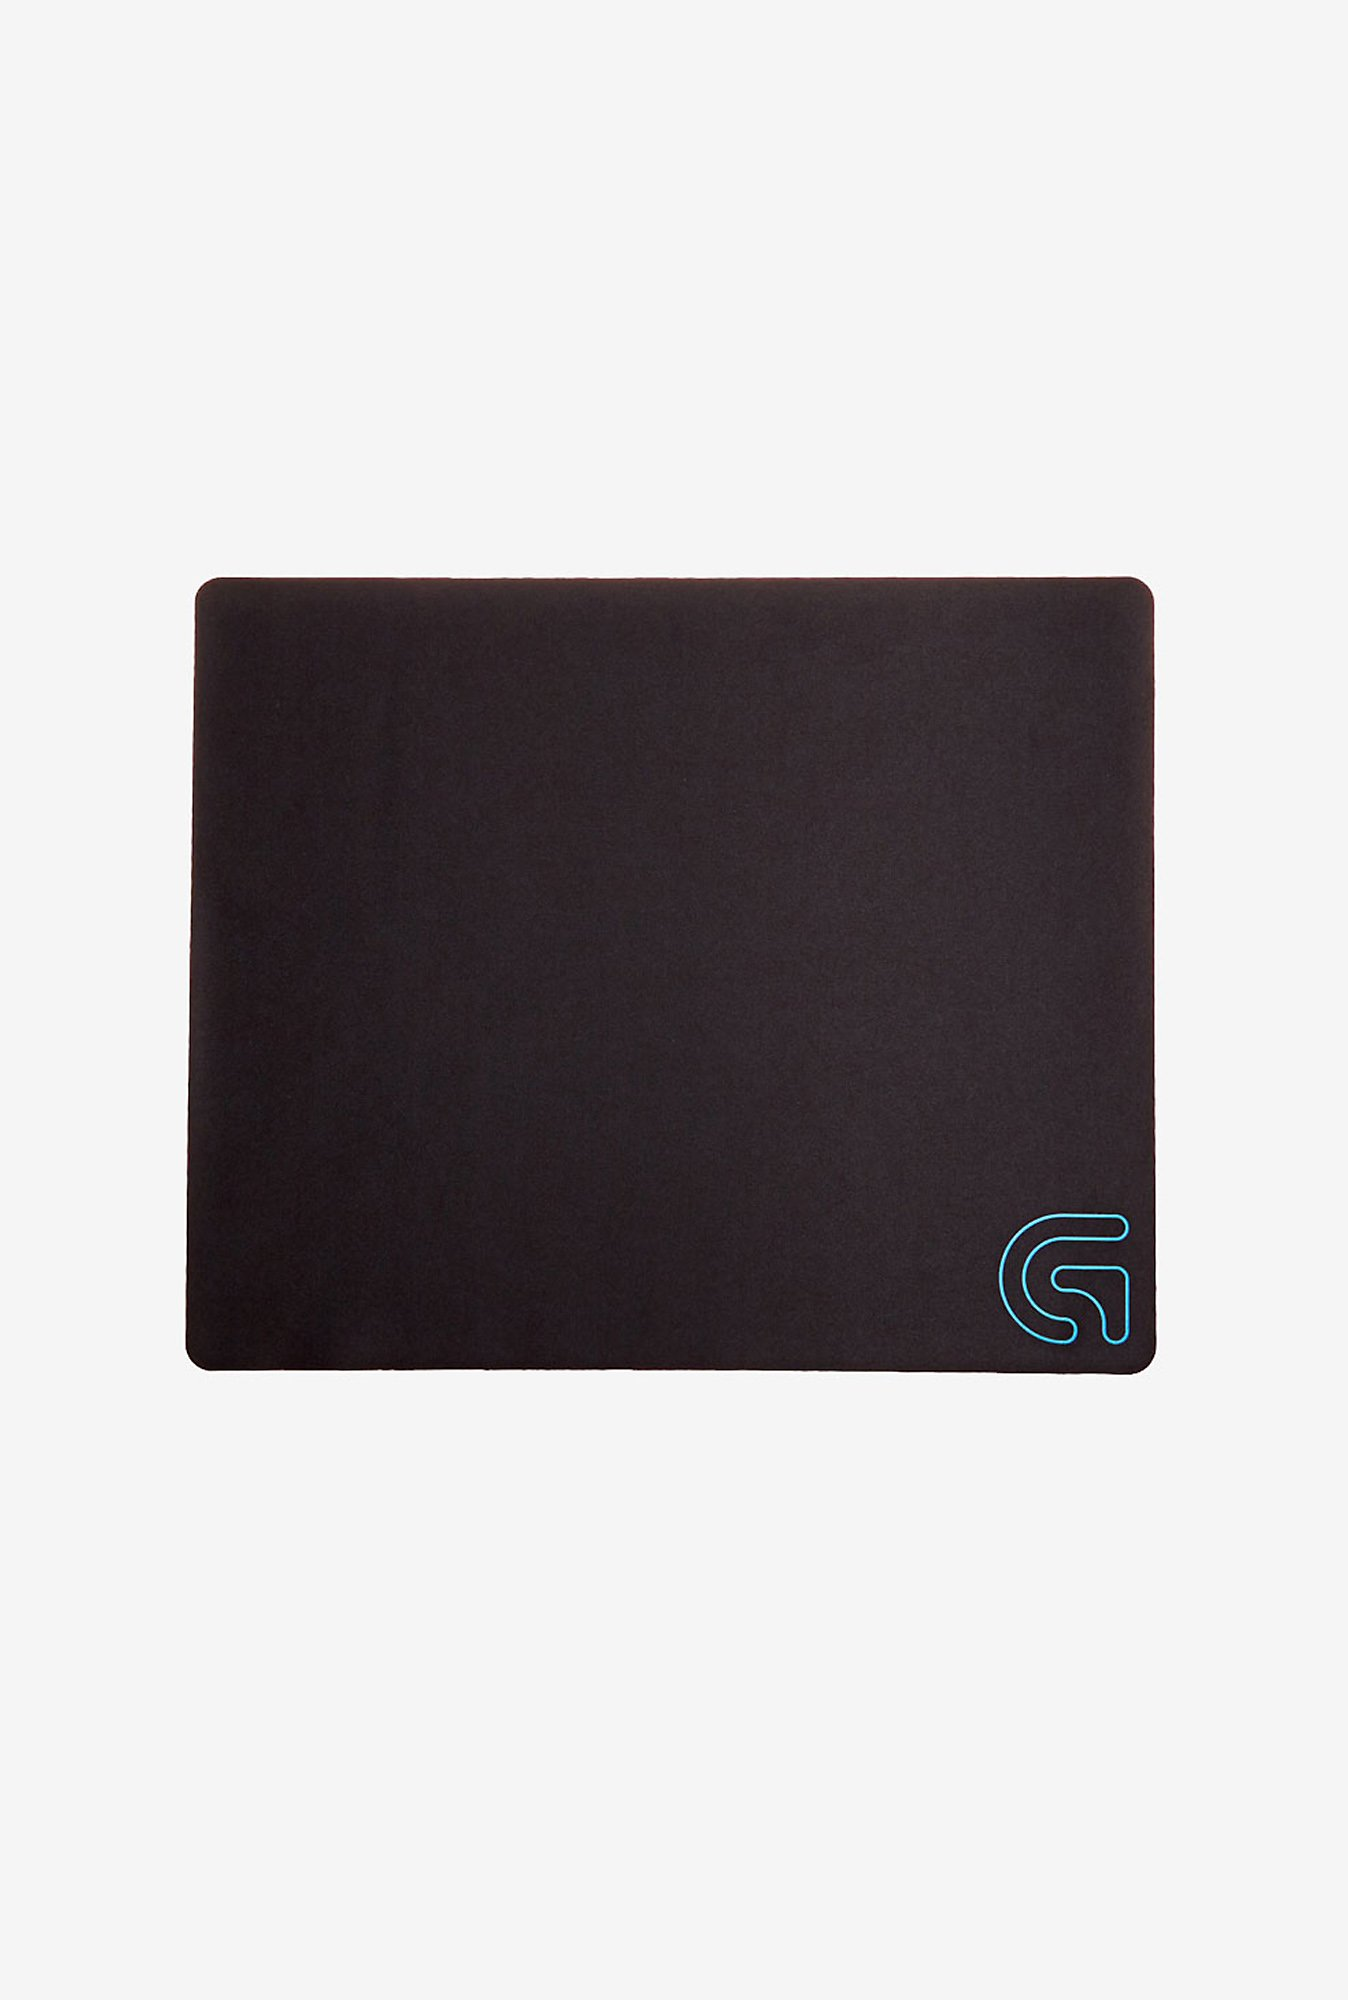 Logitech G240 Cloth Gaming MousePad Black